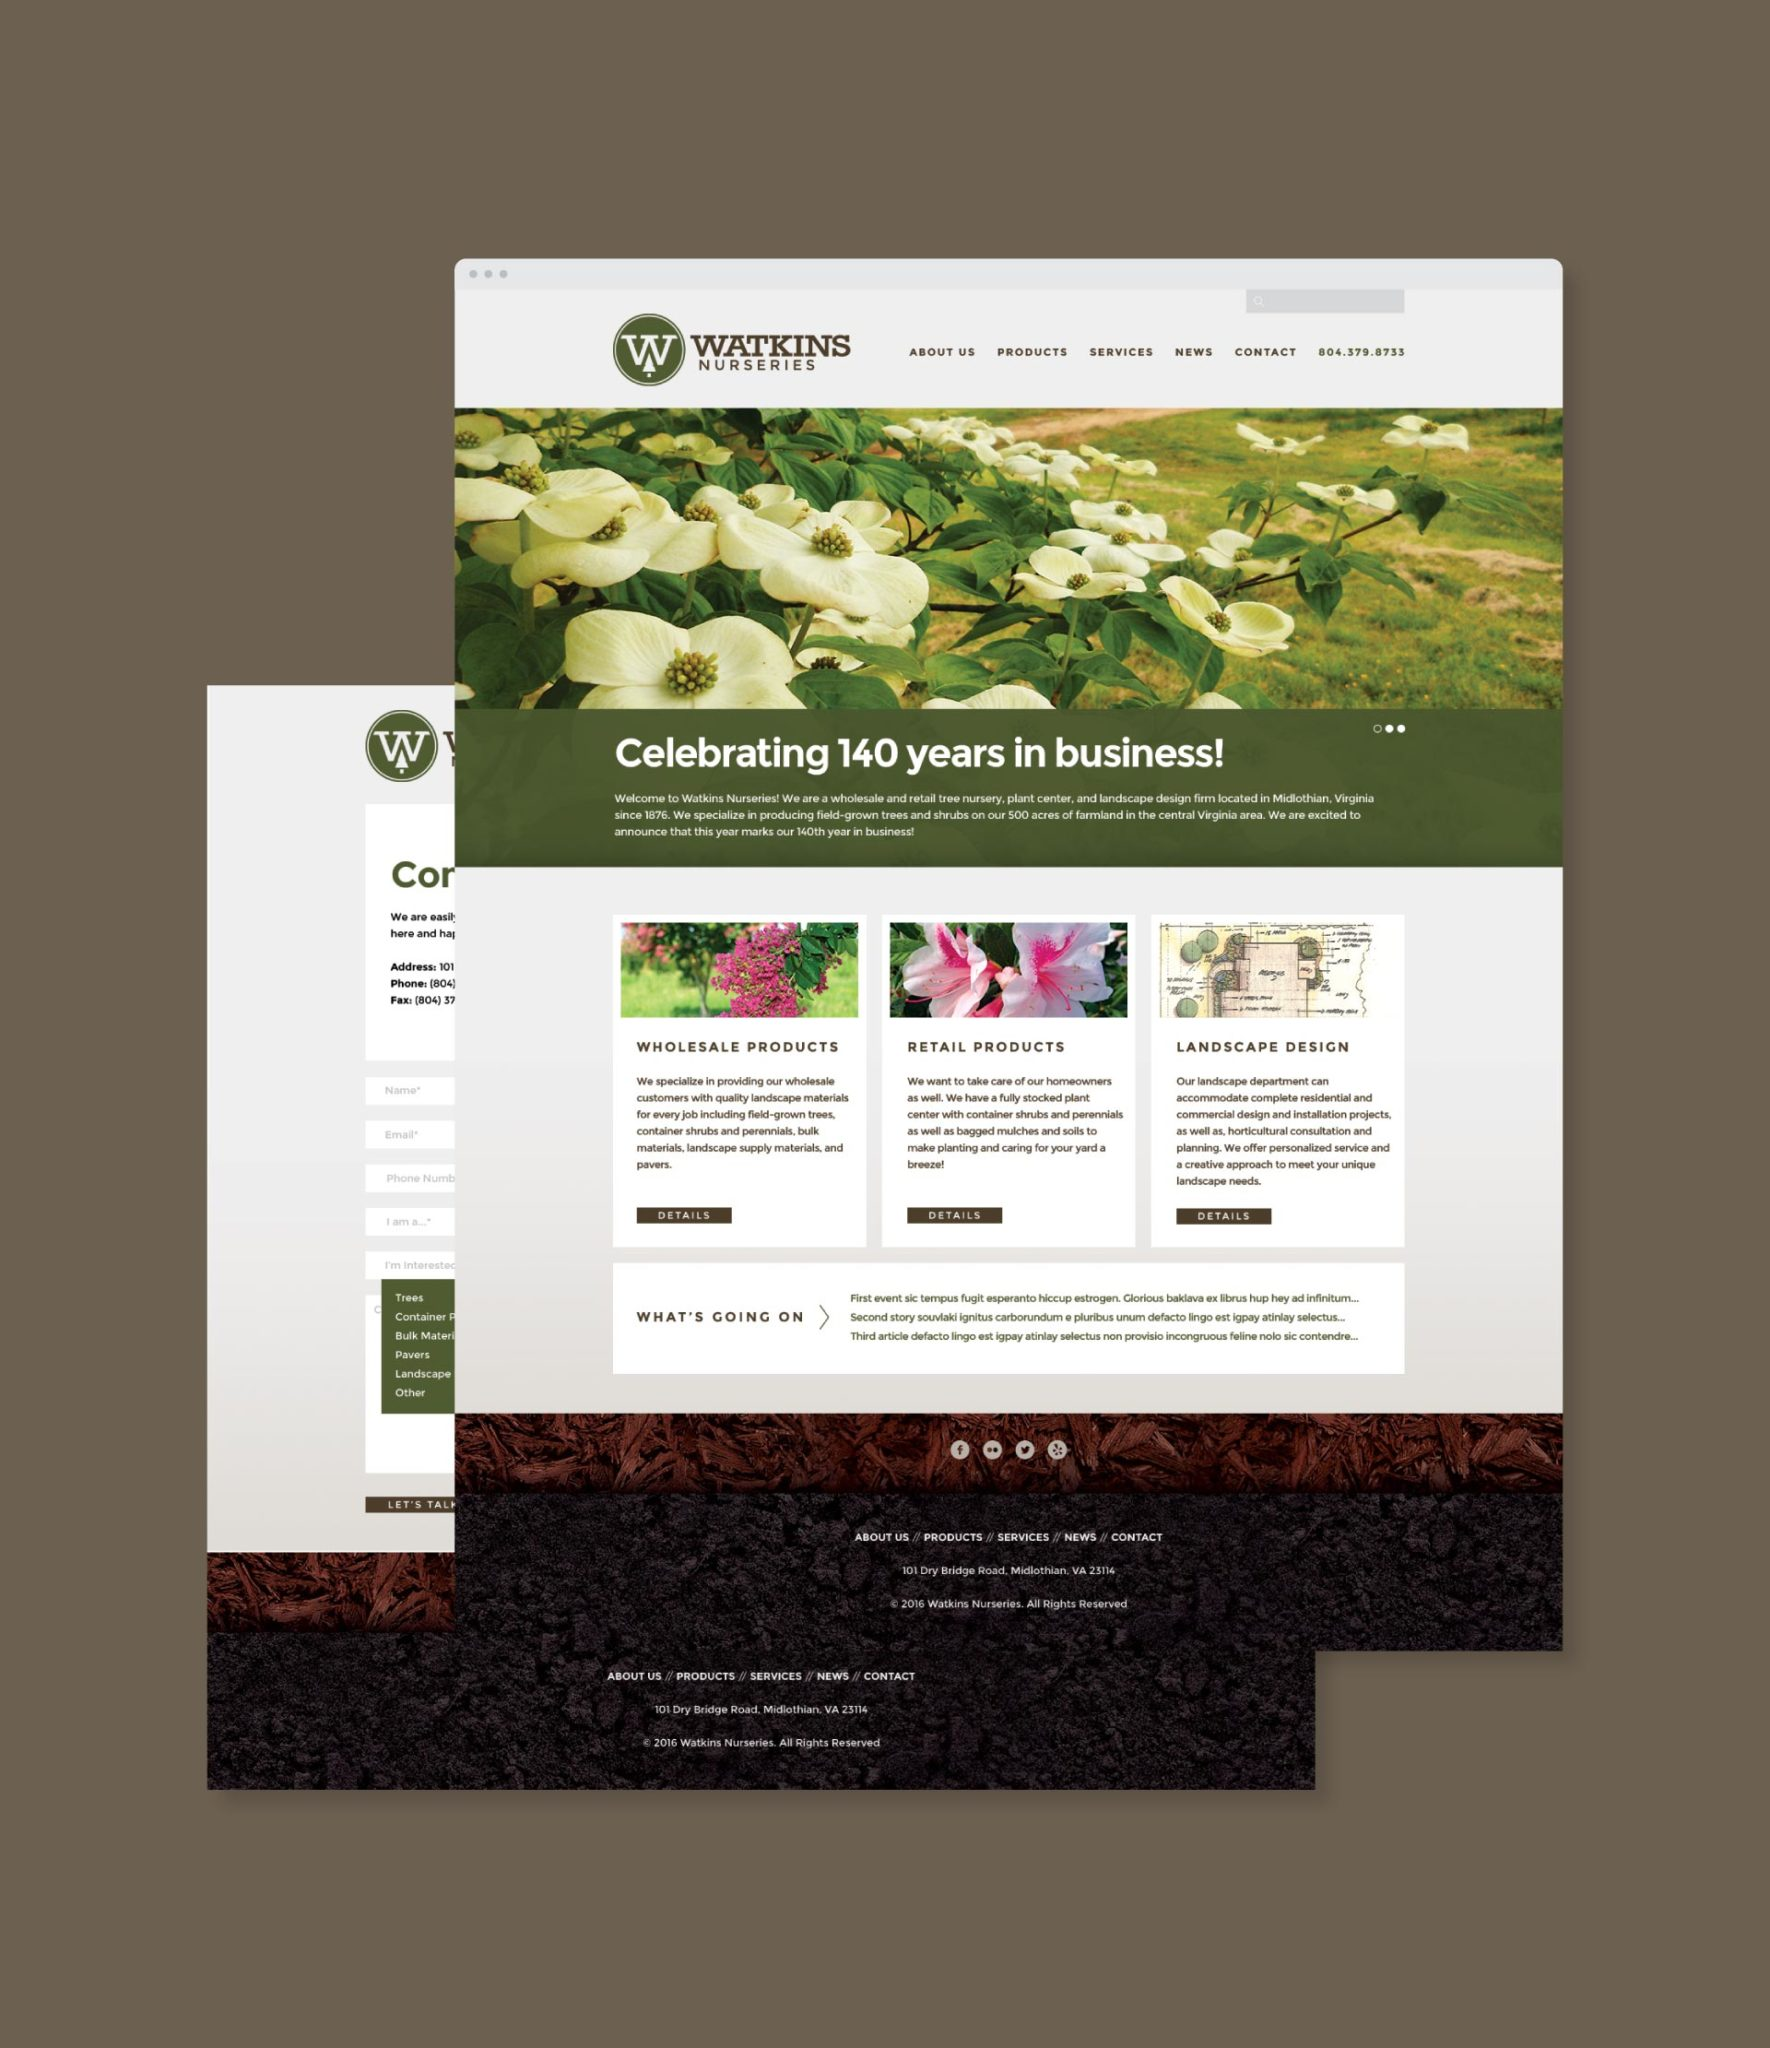 Watkins Nurseries website homepage and contact page